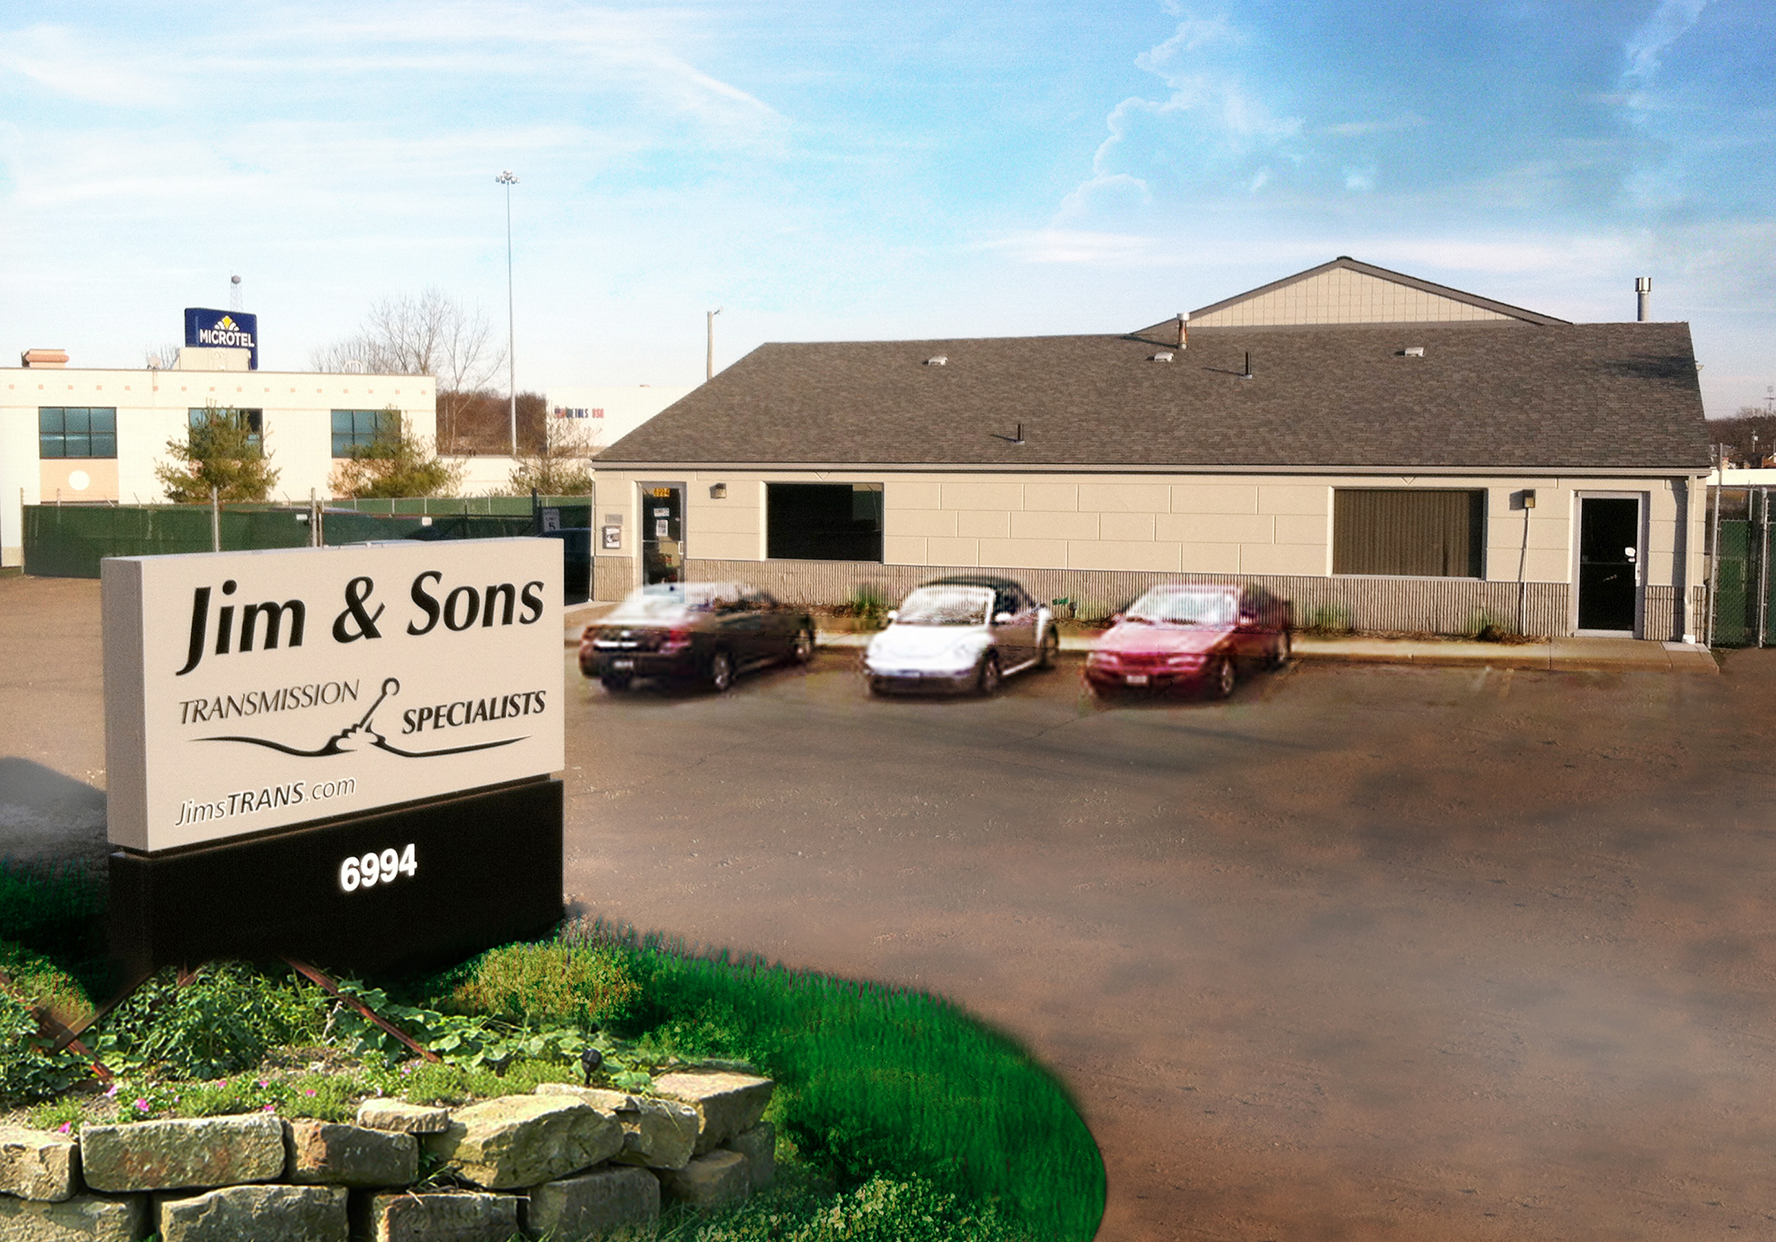 Jim & Sons Transmission Specialist - ad image